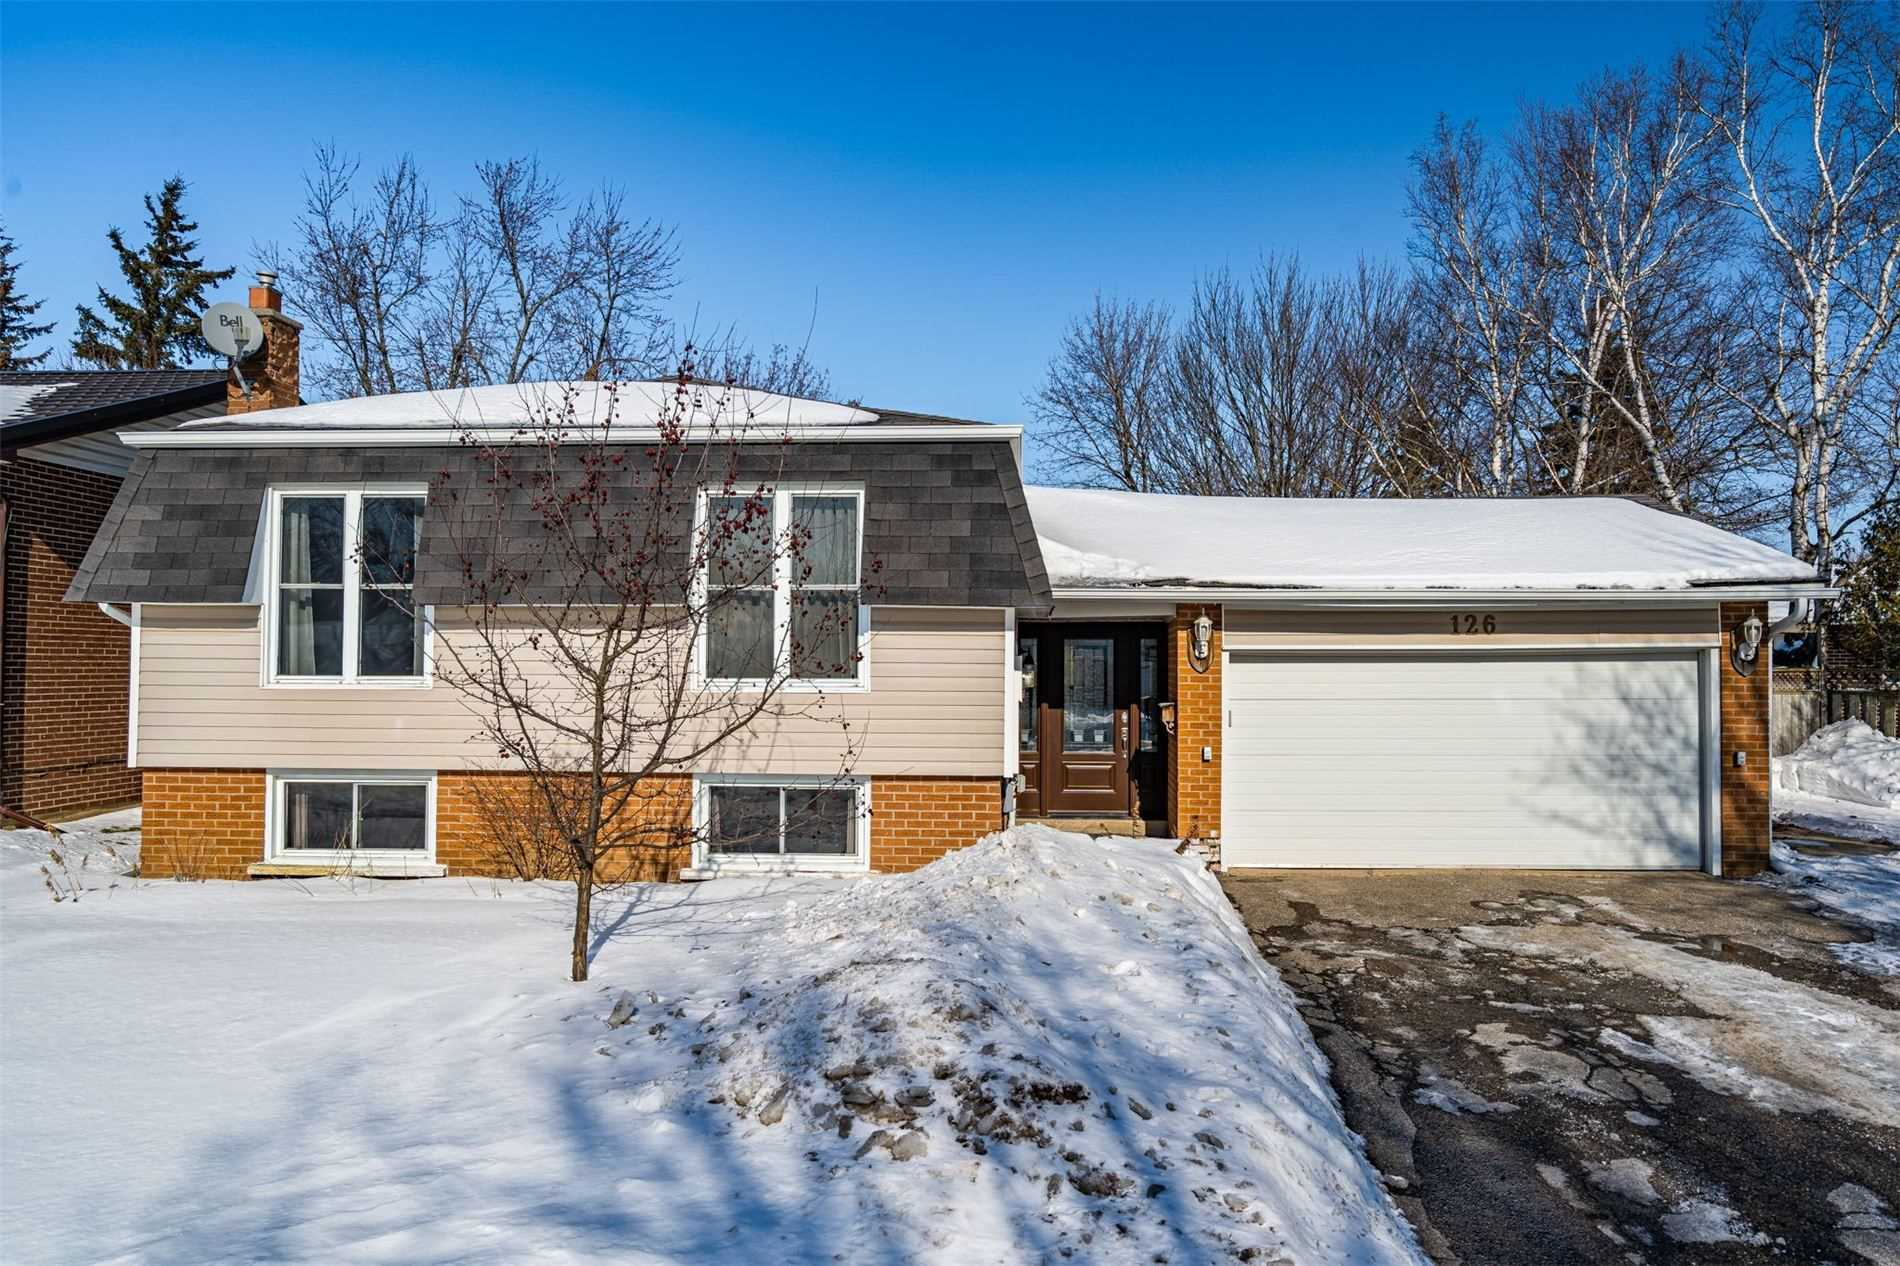 pictures of house for sale MLS: W4699893 located at 126 Morgandale Cres, Orangeville L9W3C7